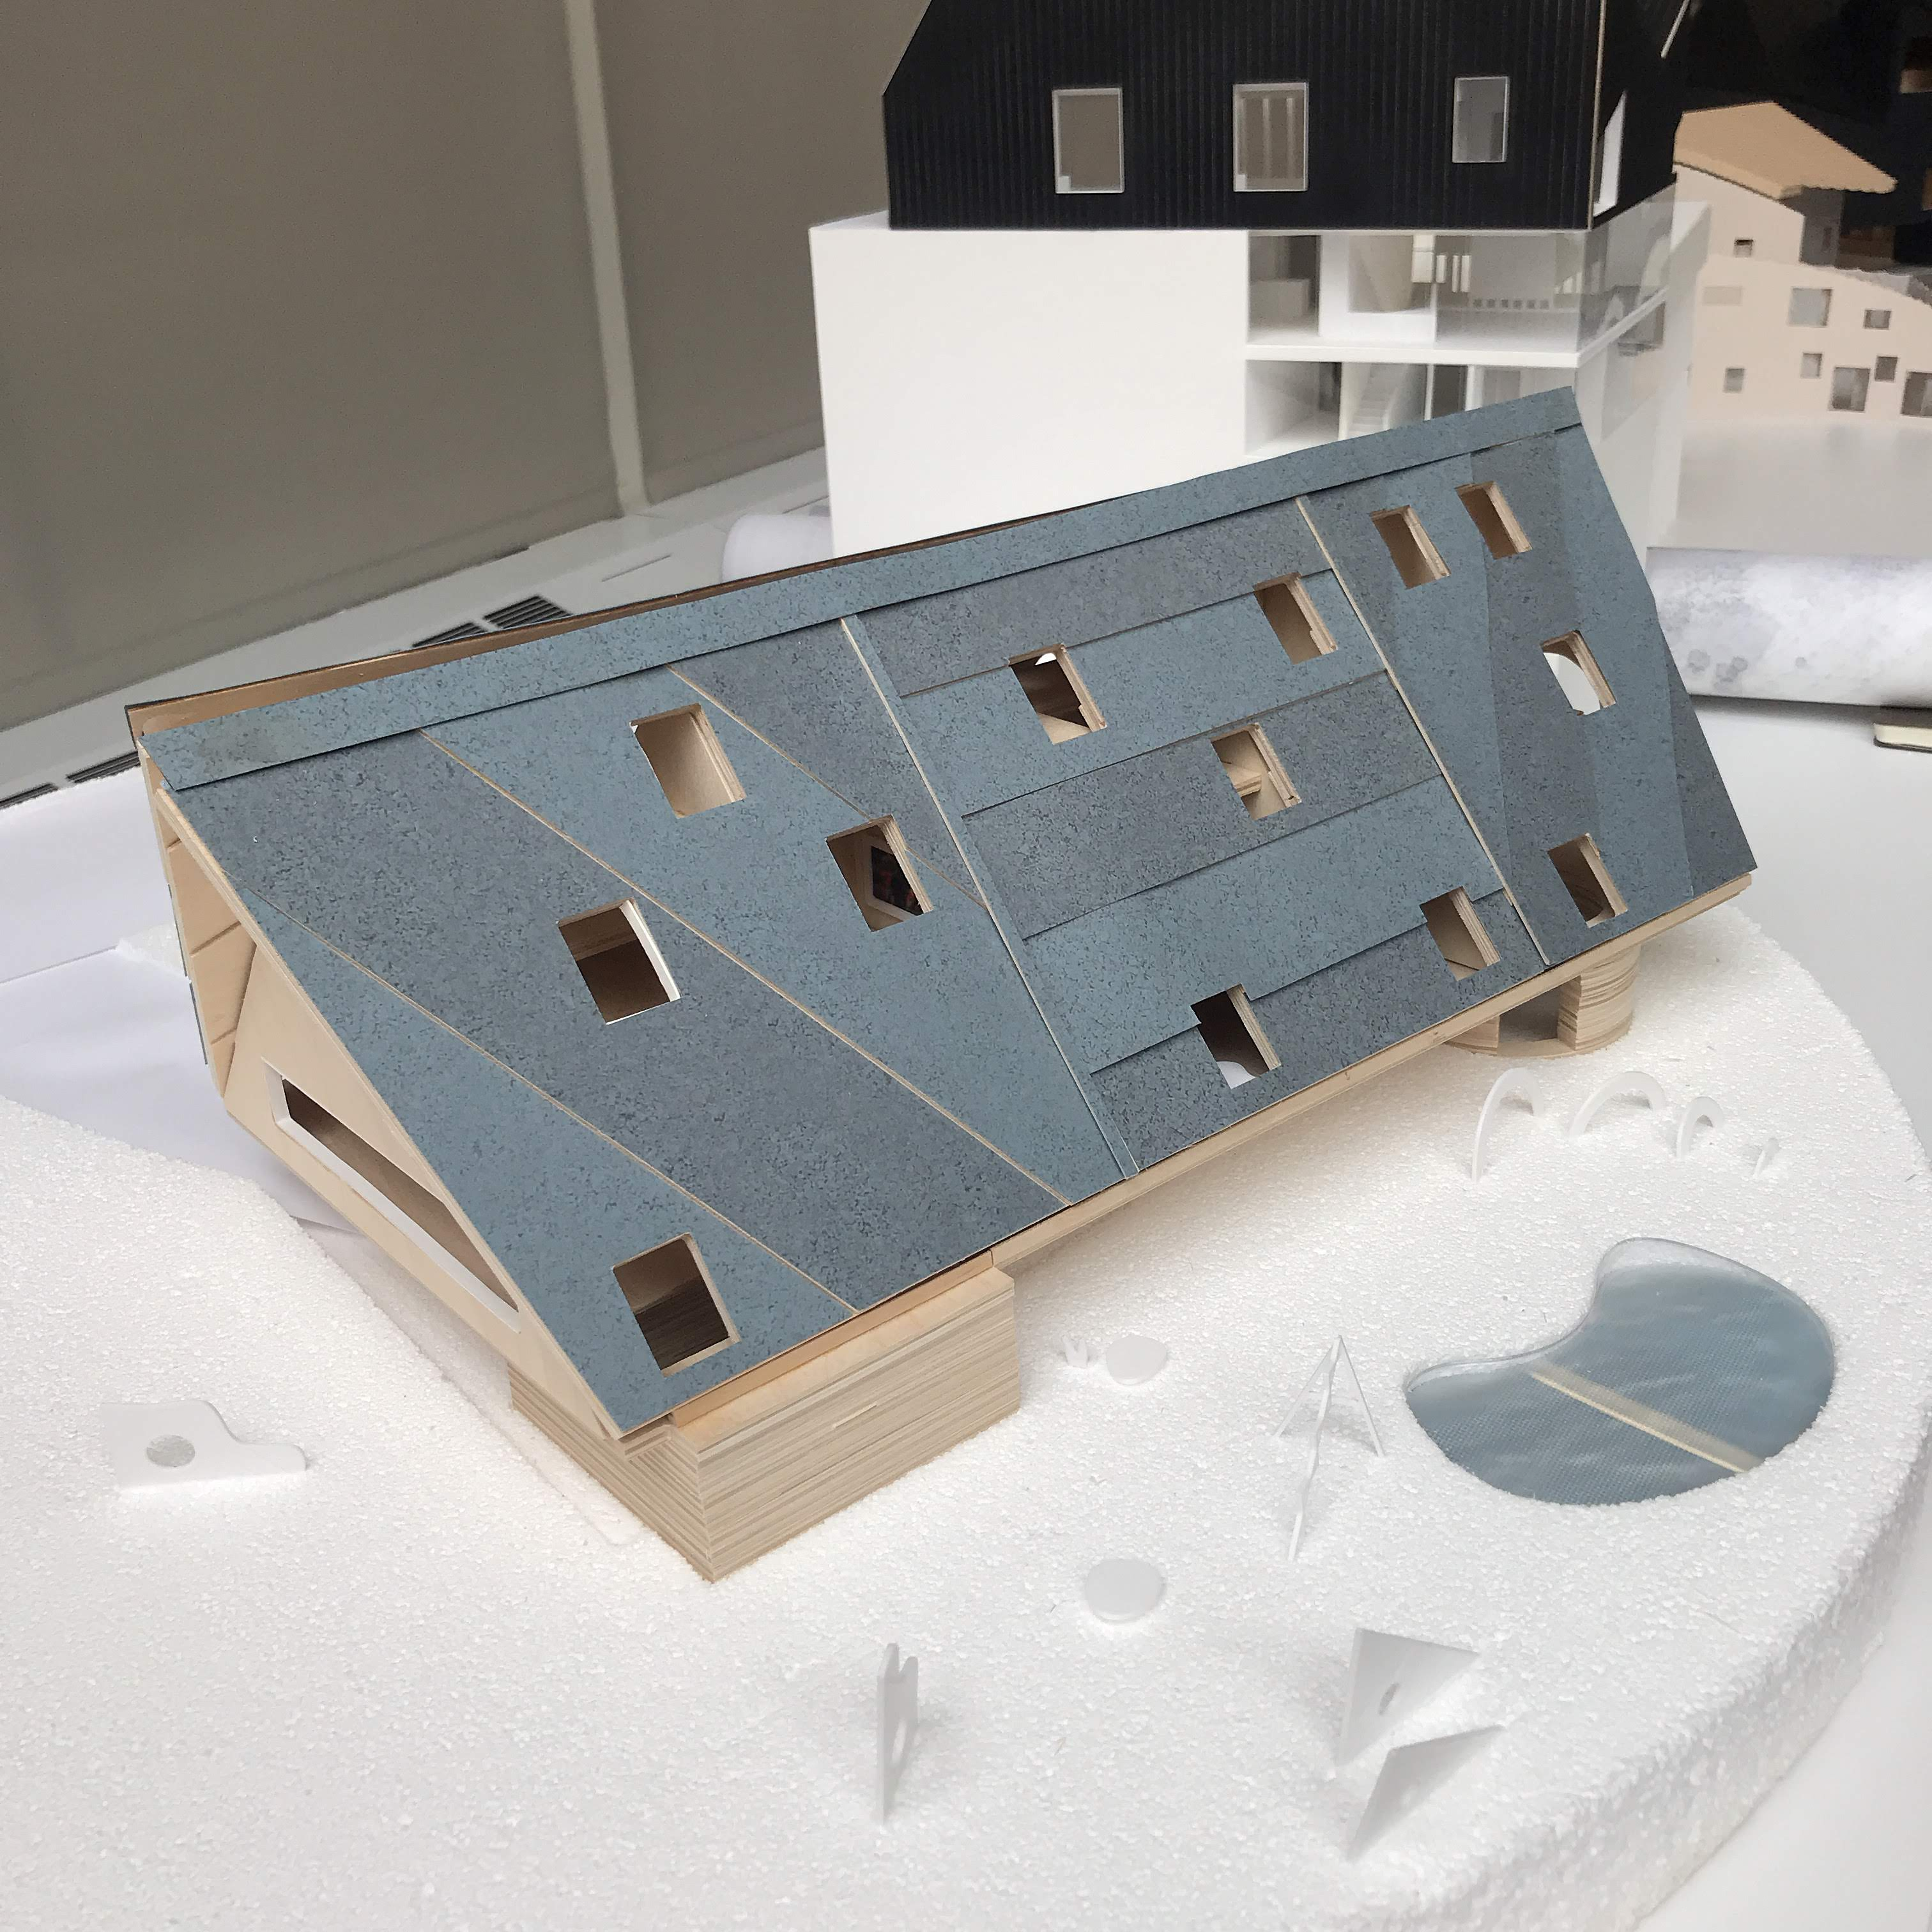 Assembled, with paper coating on the facade.